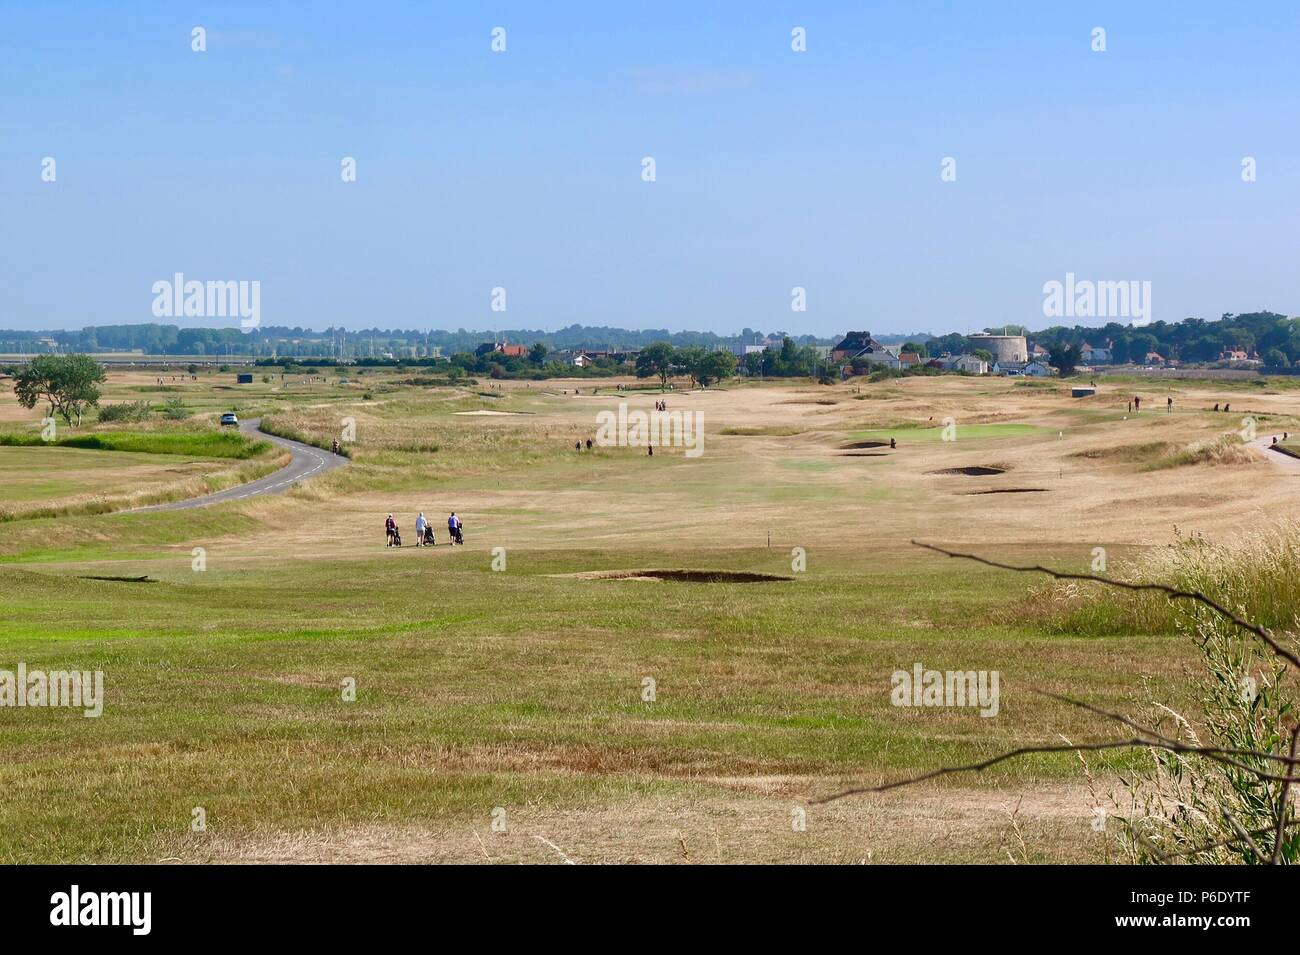 Suffolk, UK, 30 June 2018. UK Weather: Hot sunny summer morning on the links golf course in Felixstowe Ferry, Suffolk. - Stock Image